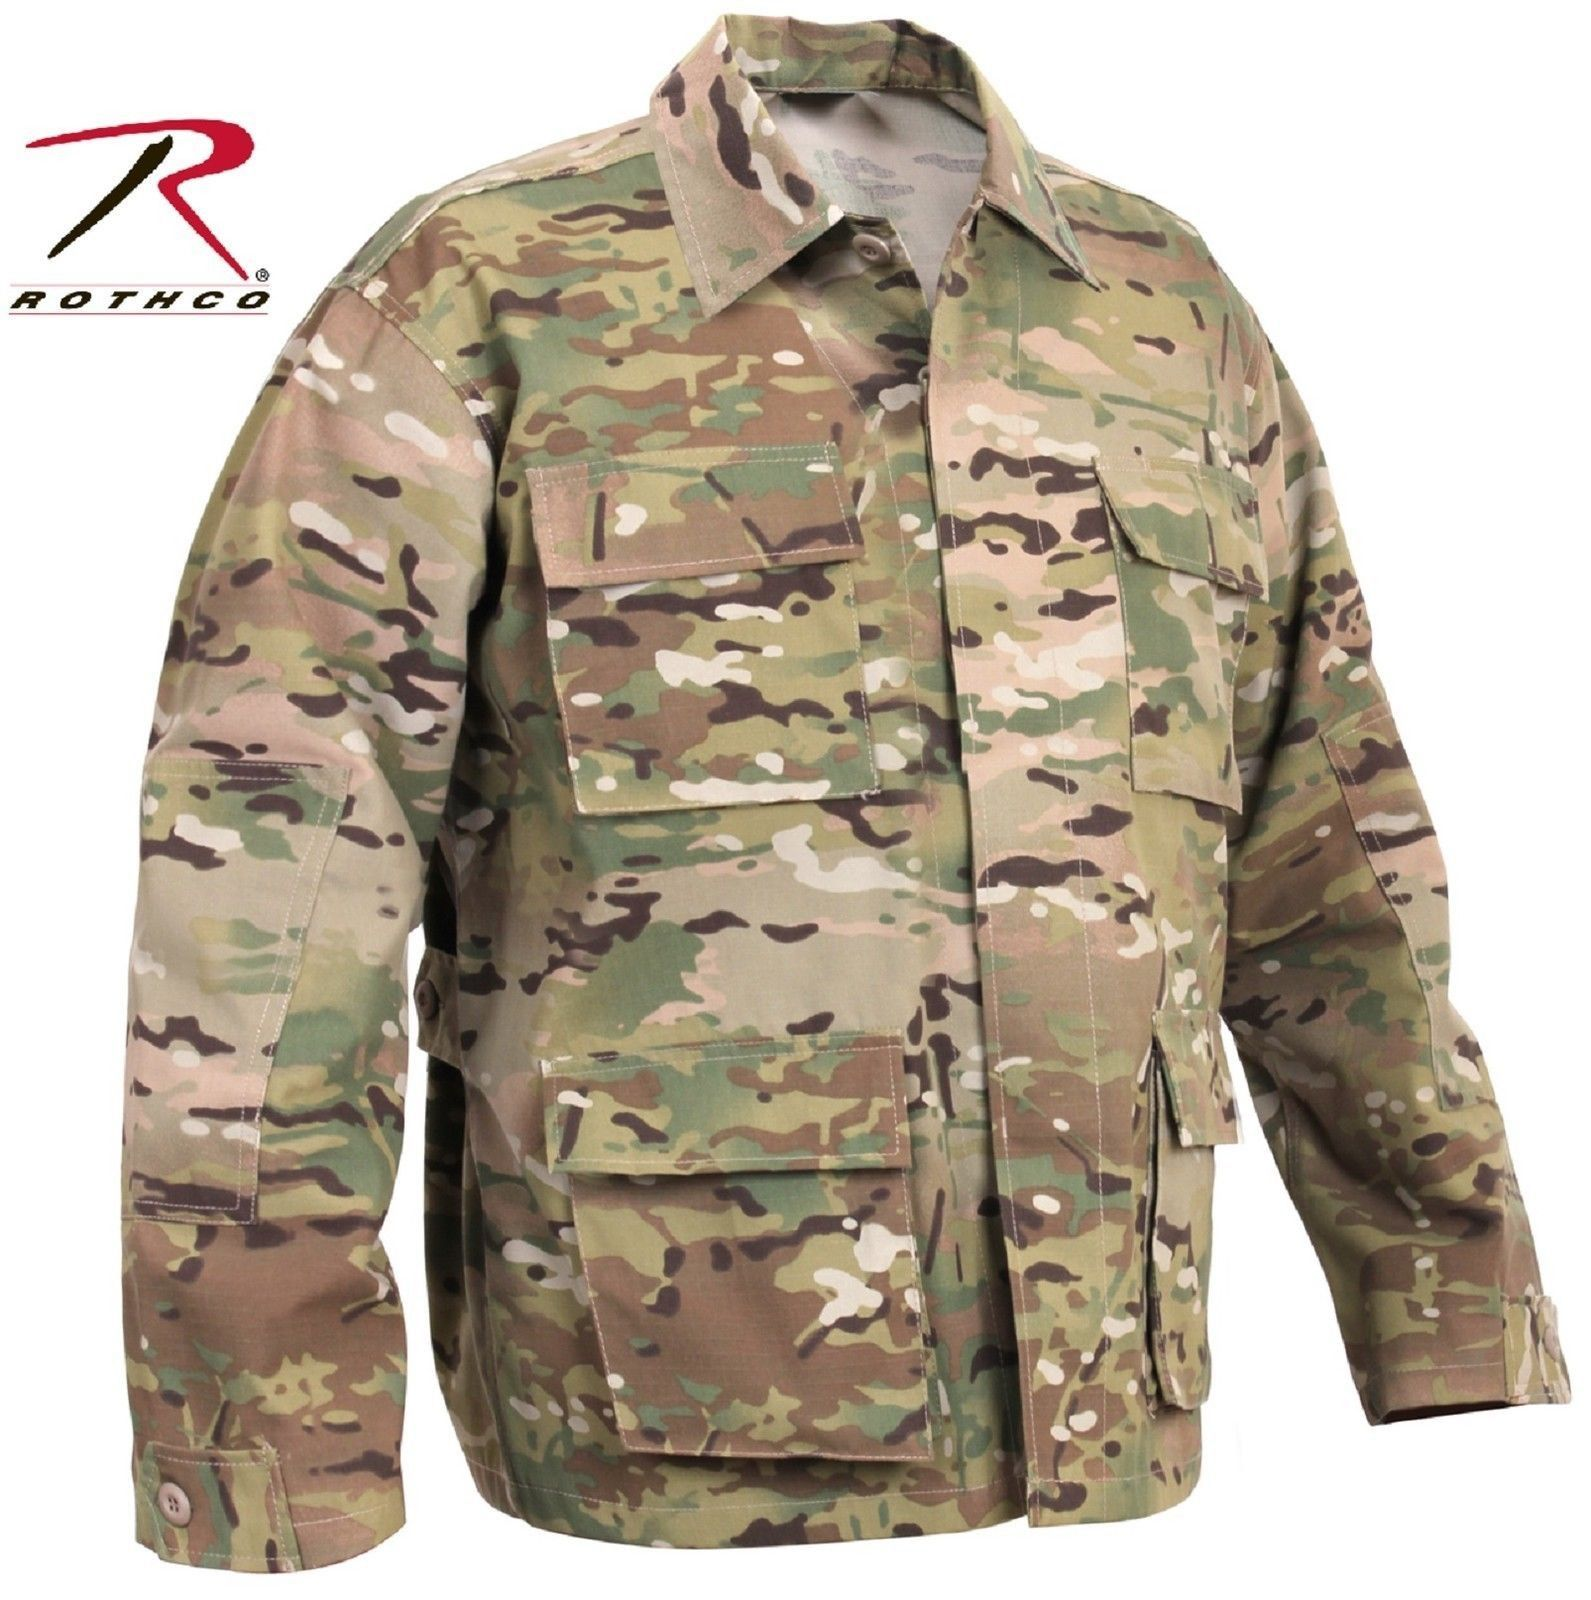 MultiCam Military Style BDU Shirts - Rothco Camouflage Uniform Shirt Top  S-3XL 0f9f57f3bd